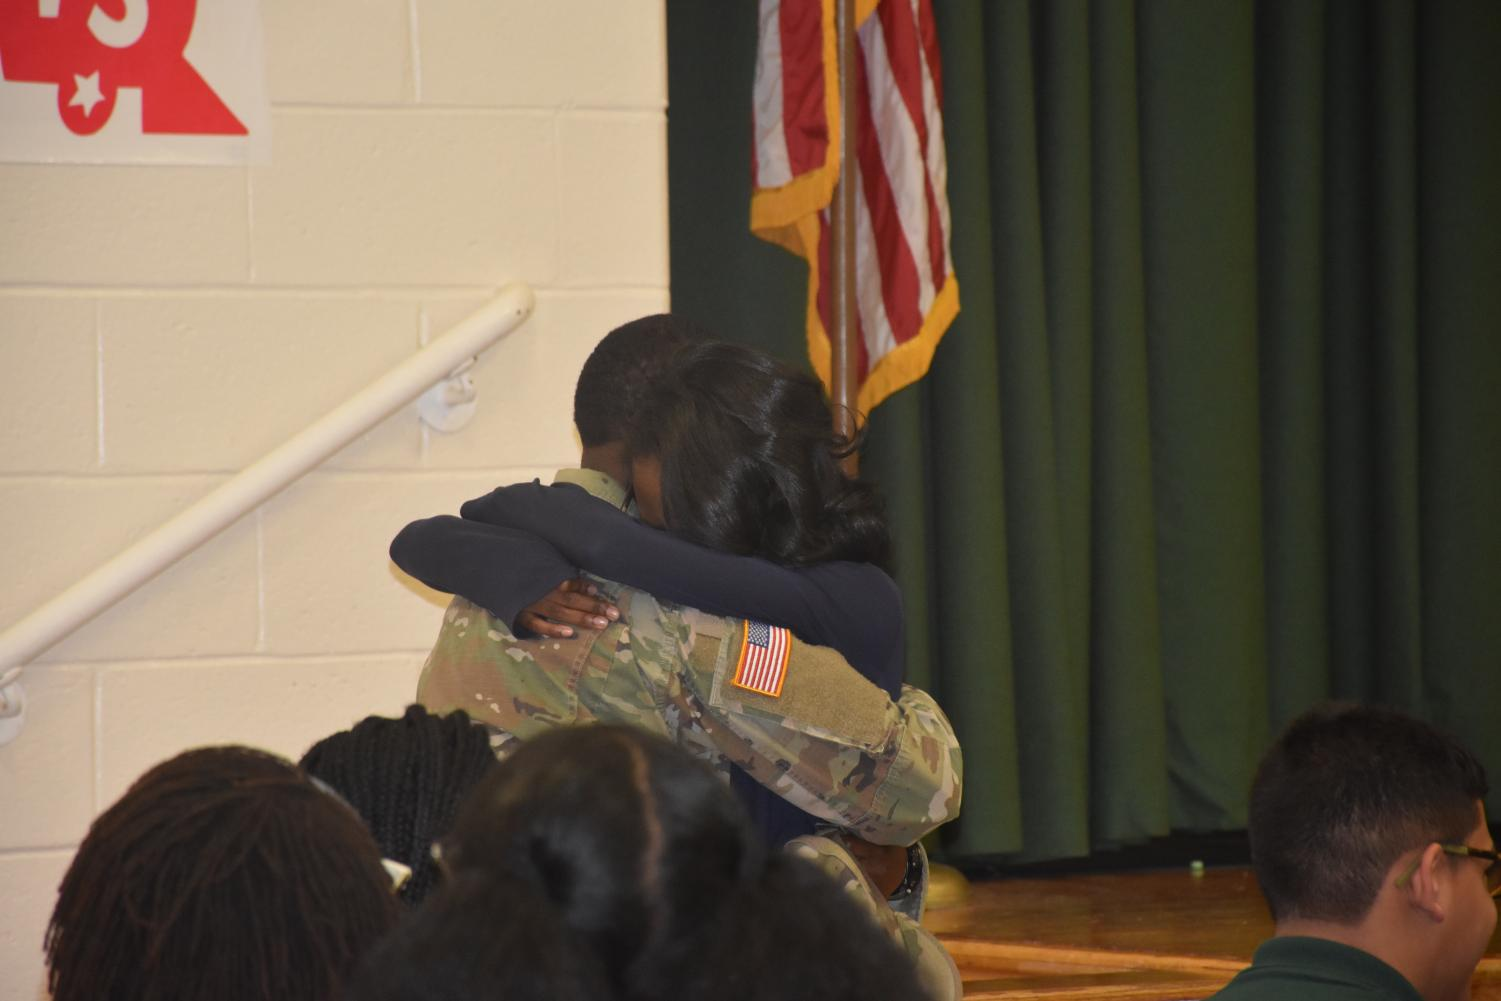 Eleisha Poole and her Aunt reunite after her Aunt was previously serving the nation.